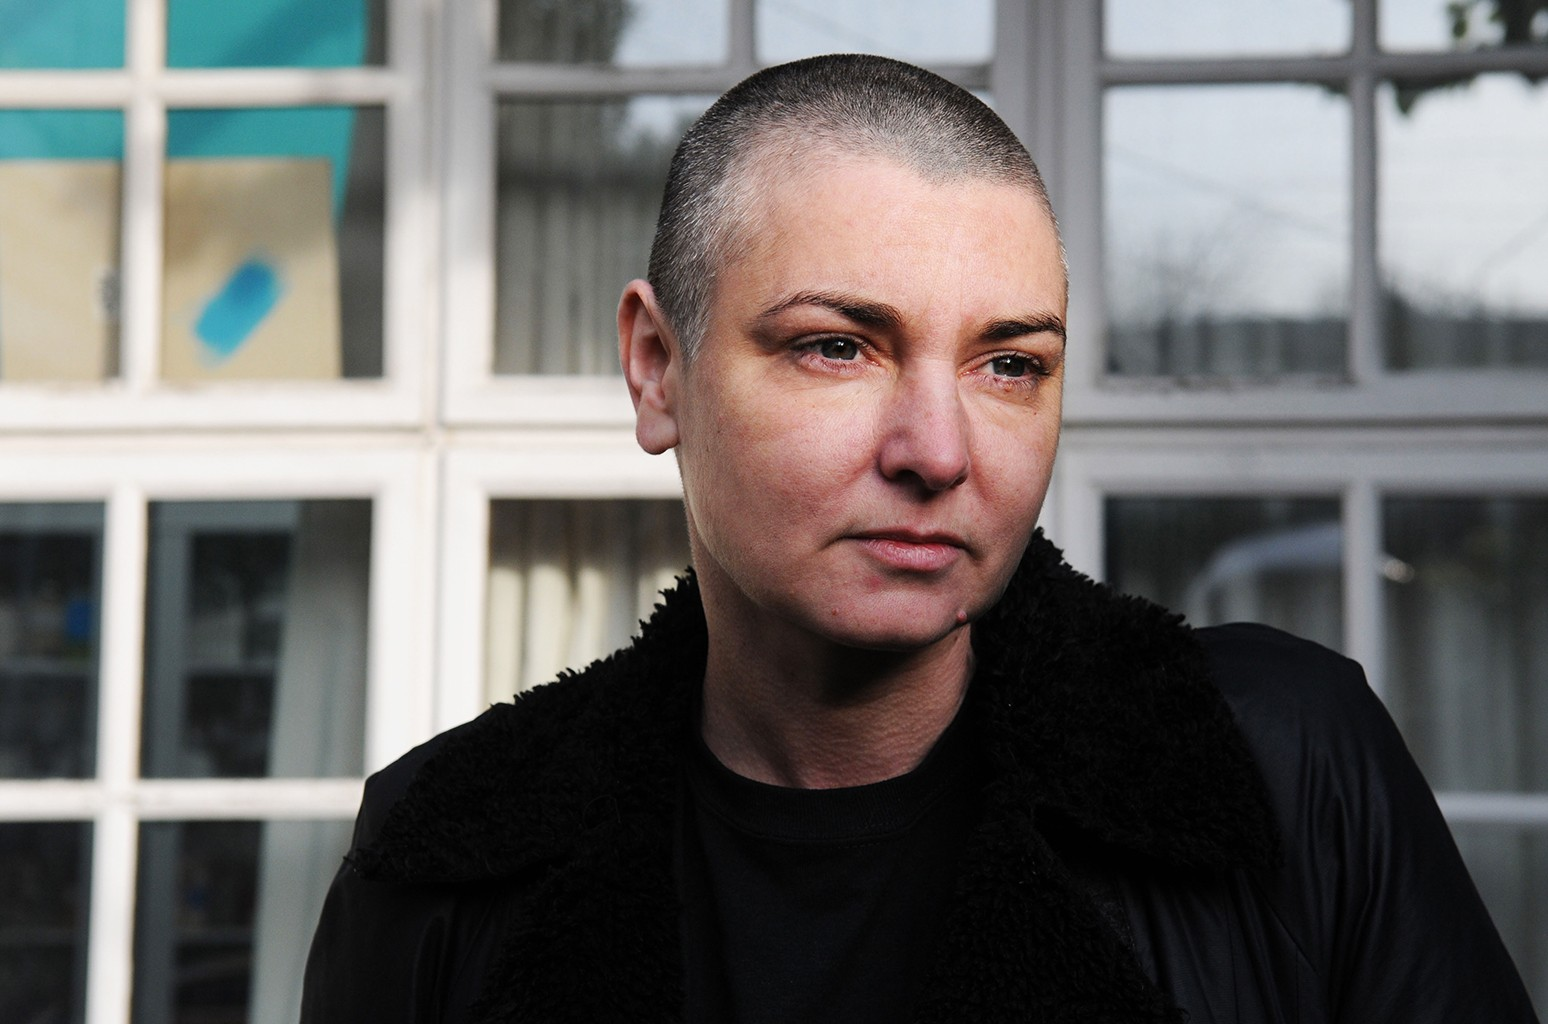 Sinead O'Connor photographed in 2012